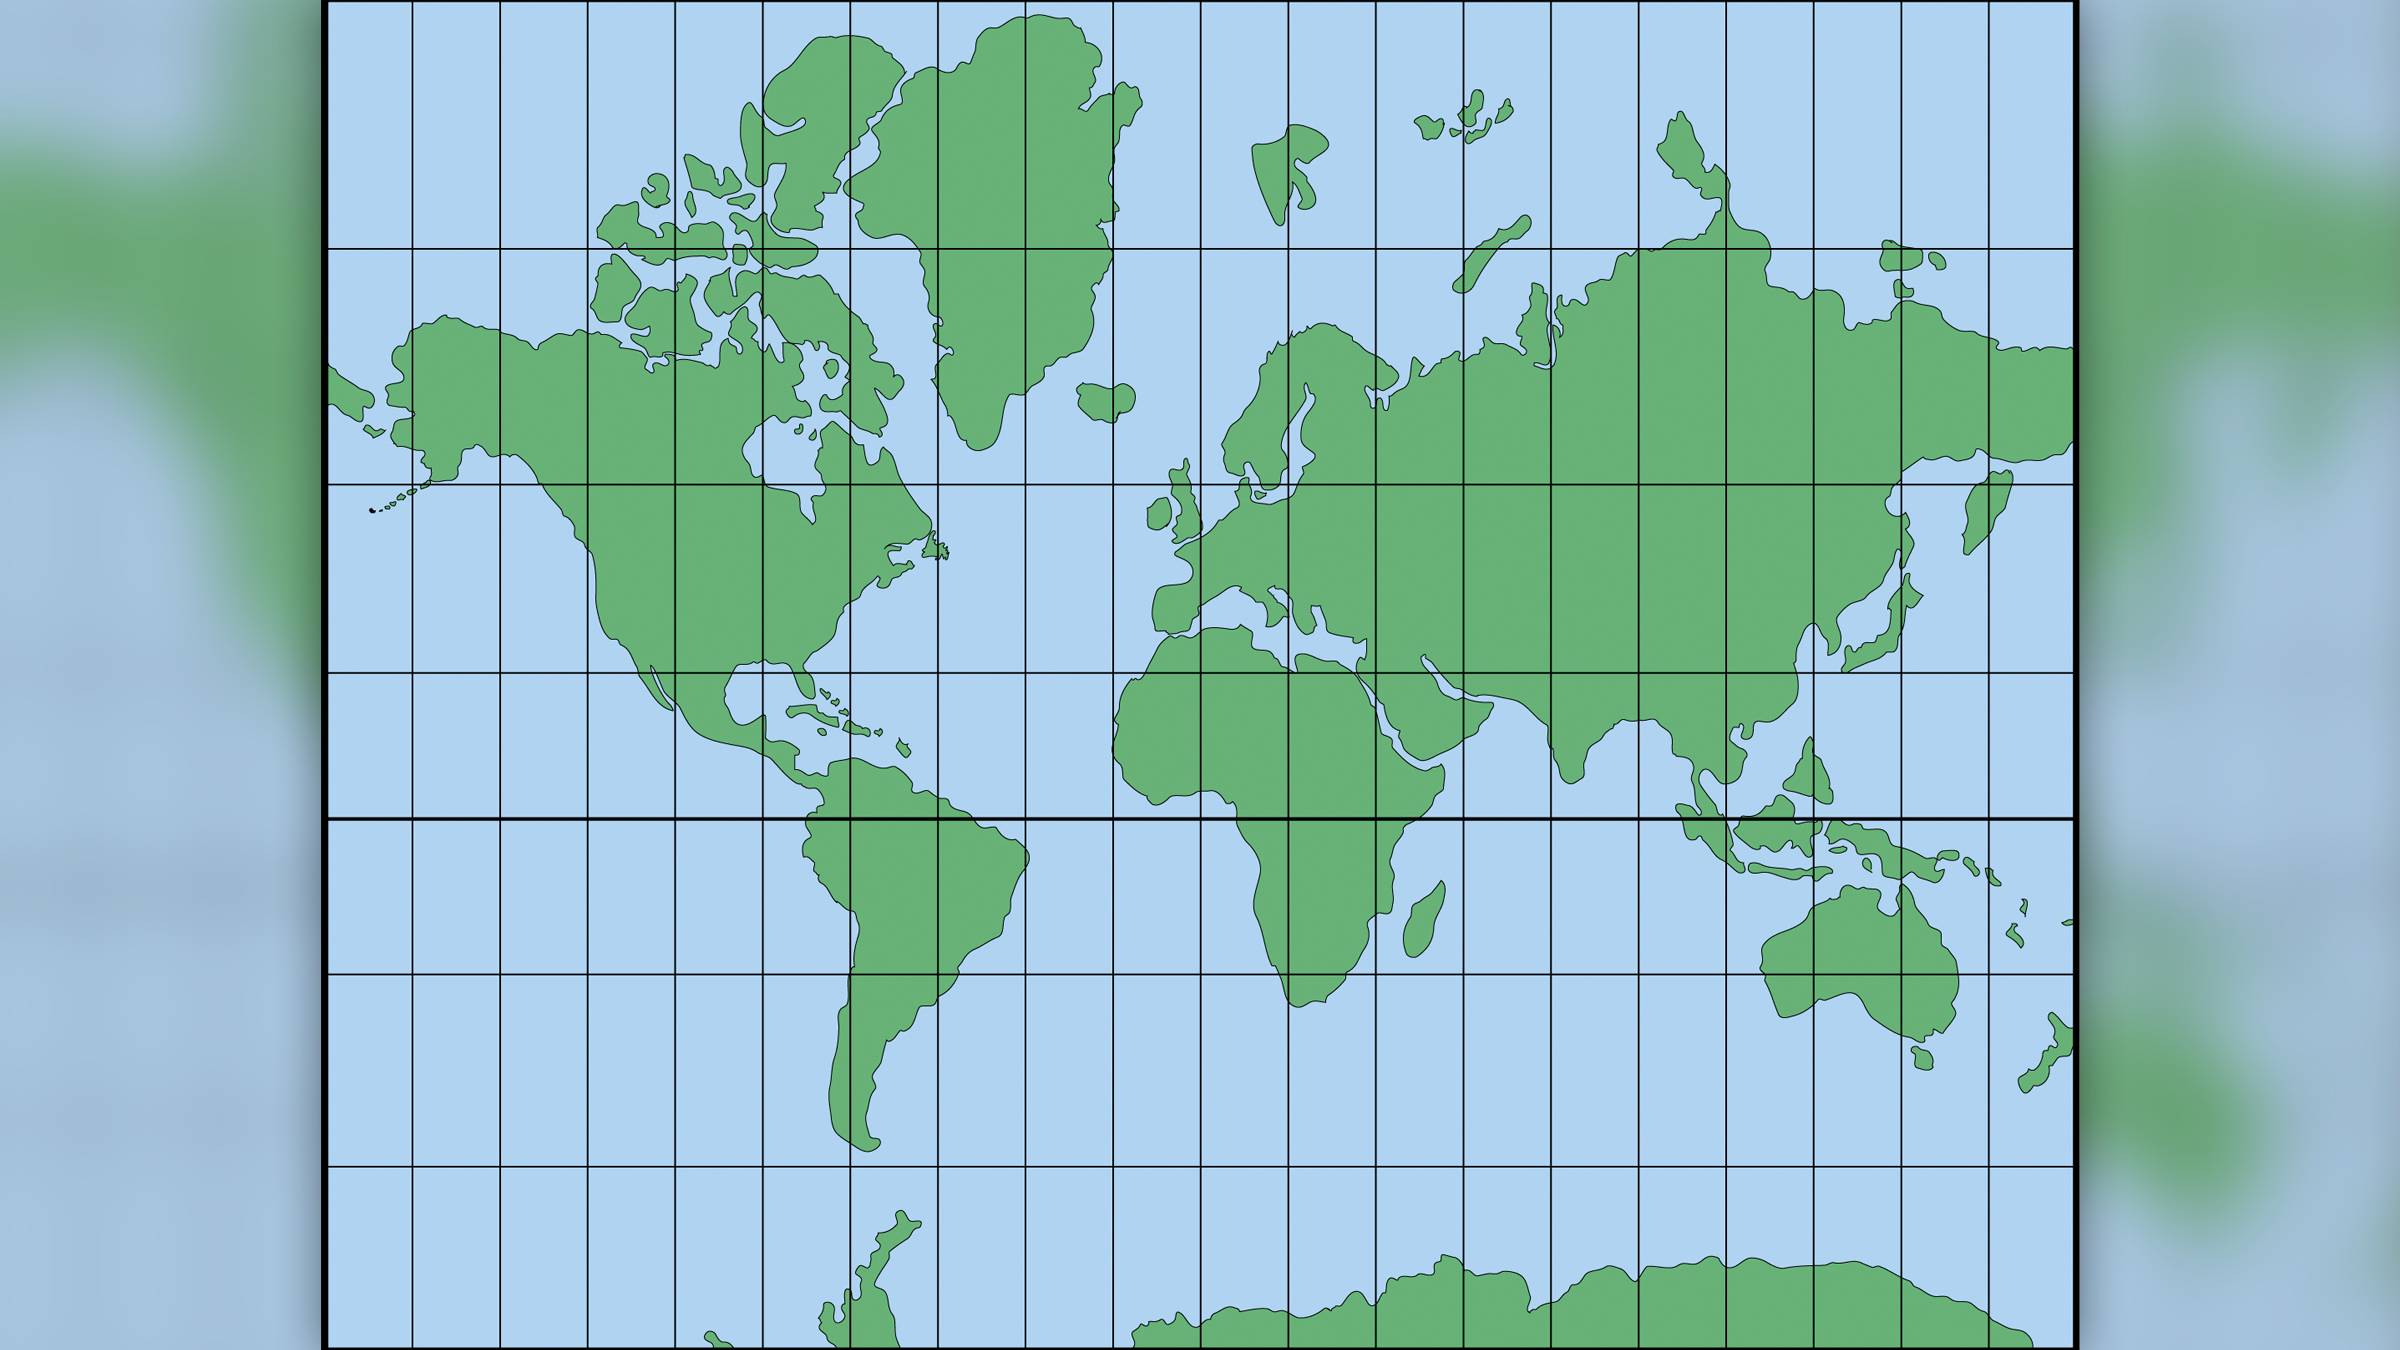 The Mercator projection, created in 1569 by the Dutch geographer Gerard Mercator, helped sailers navigate the world.